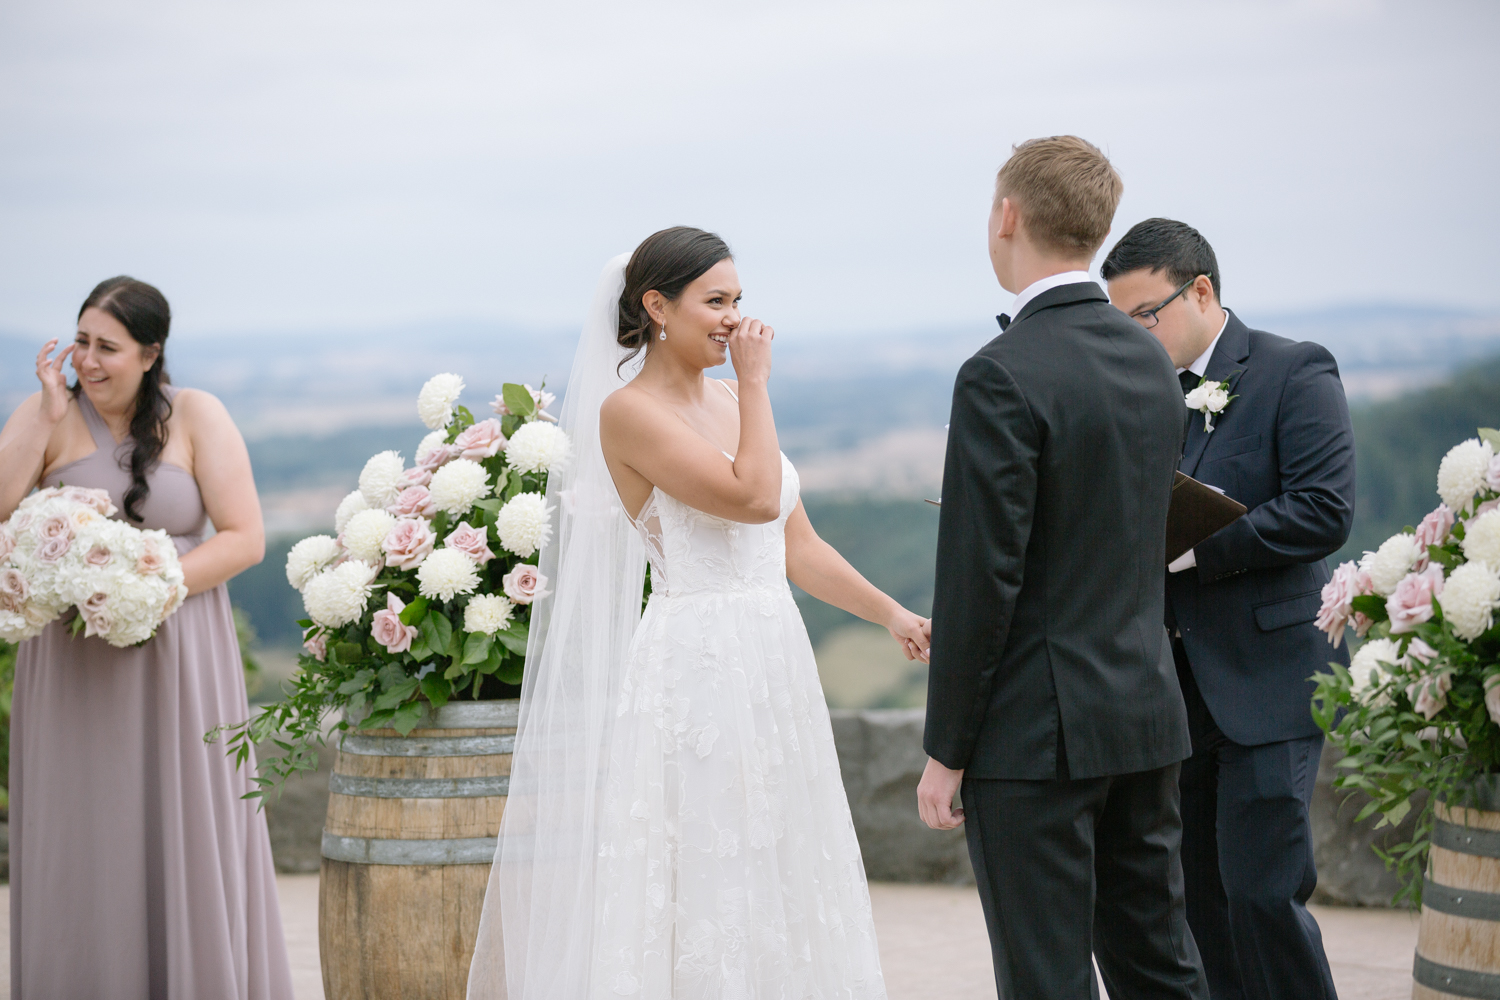 Youngberg Hill Vineyard Wedding in Wine Country Oregon - Corrie Mick Photography-306.jpg